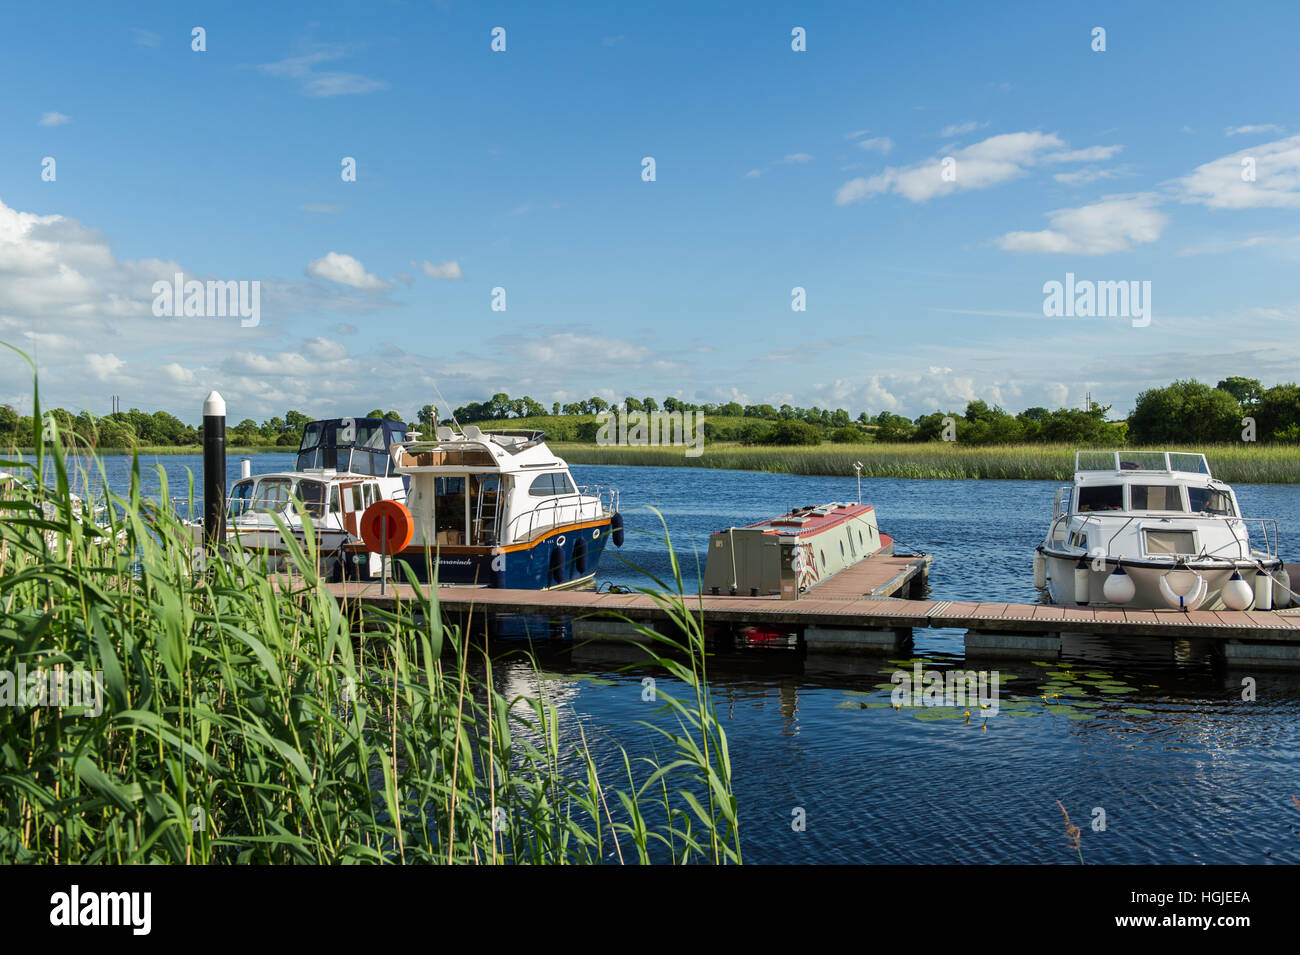 Boats moored in the marina at Carrick on Shannon, County Leitrim, Ireland on a fine day with copy space. - Stock Image